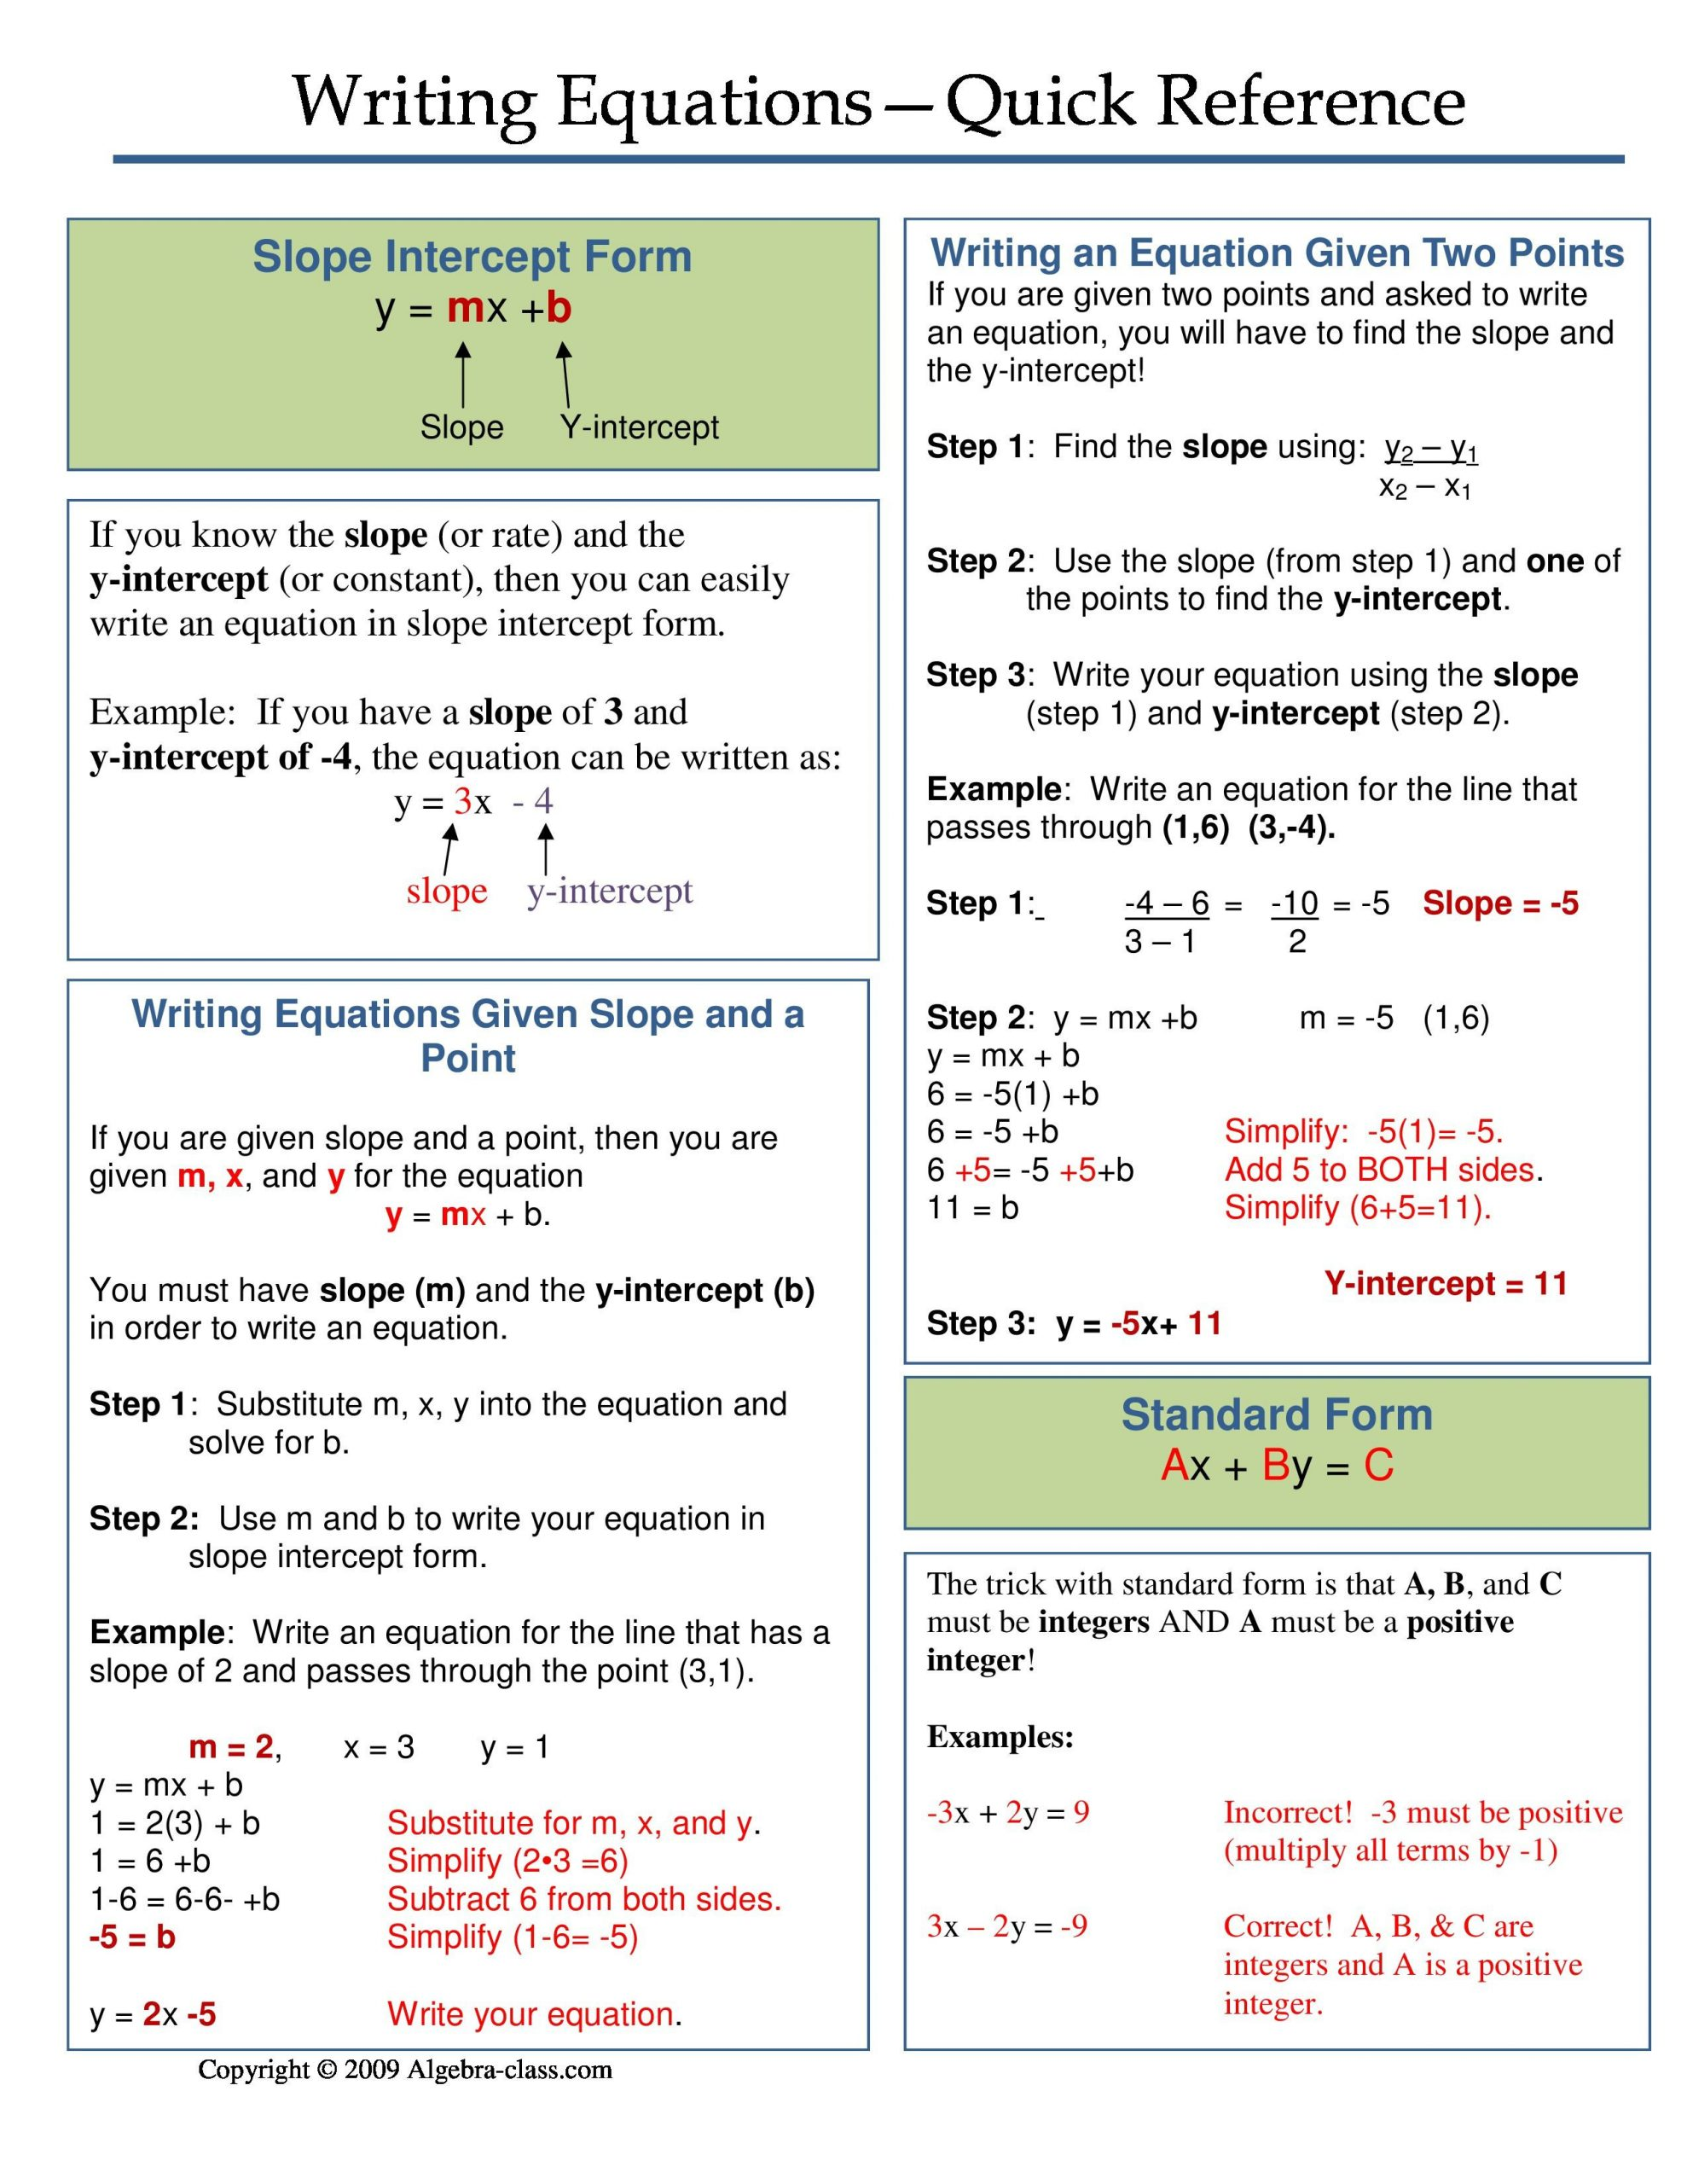 Writing Equations From Tables Worksheet E Page Notes Worksheet for Writing Equations Unit